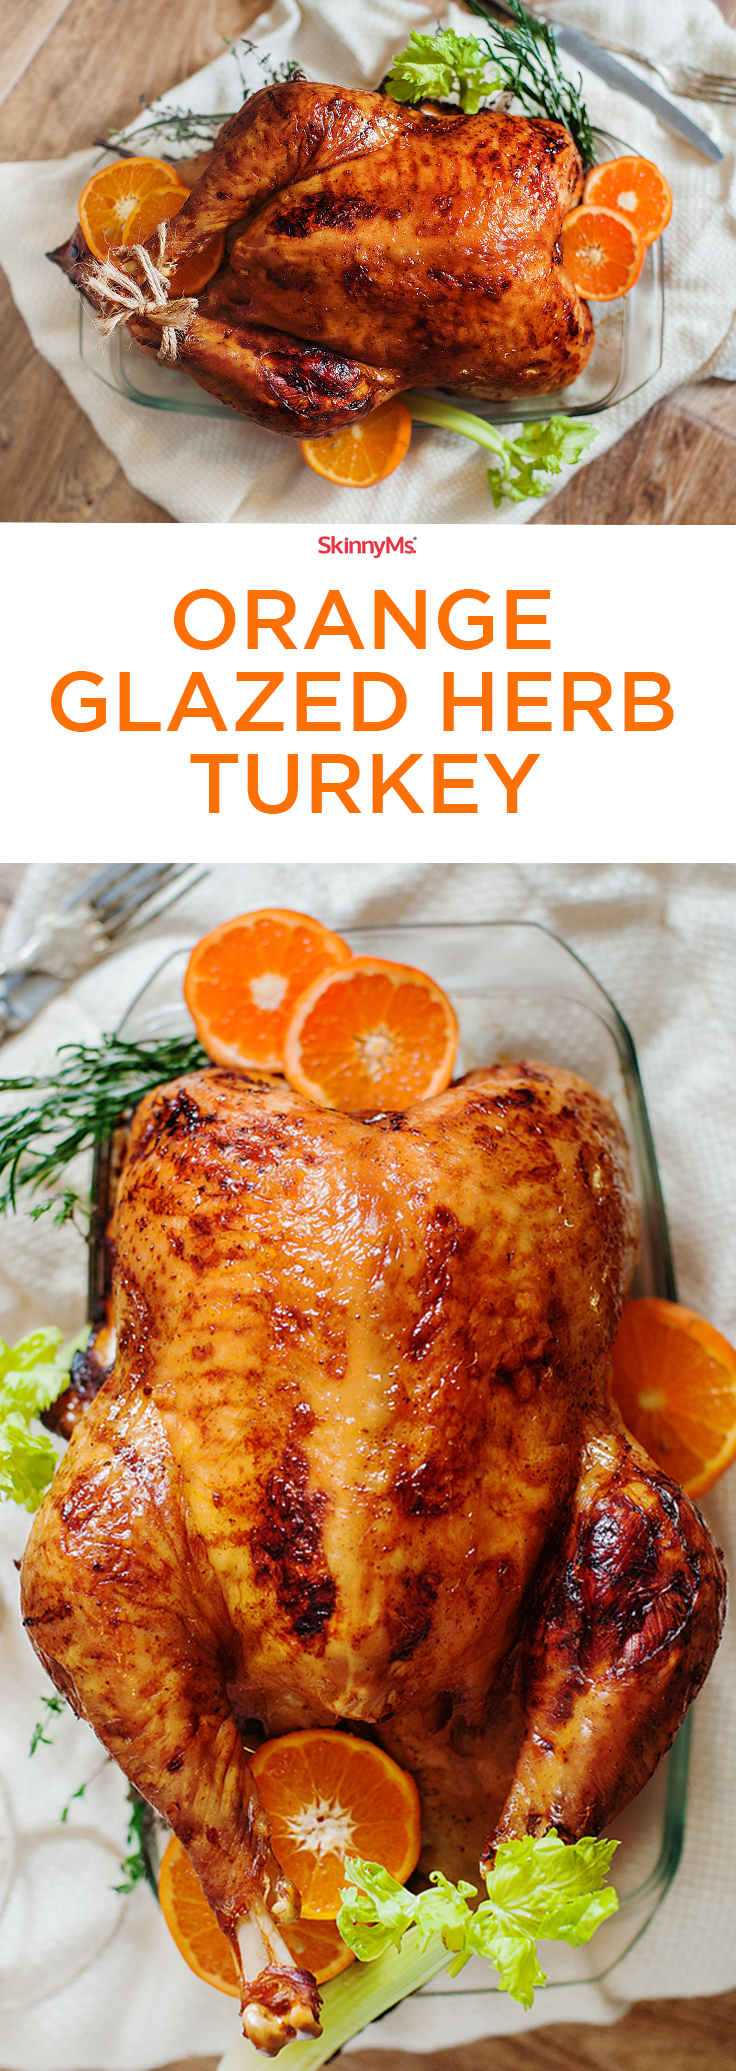 Photo of Orange Glazed Herb Turkey